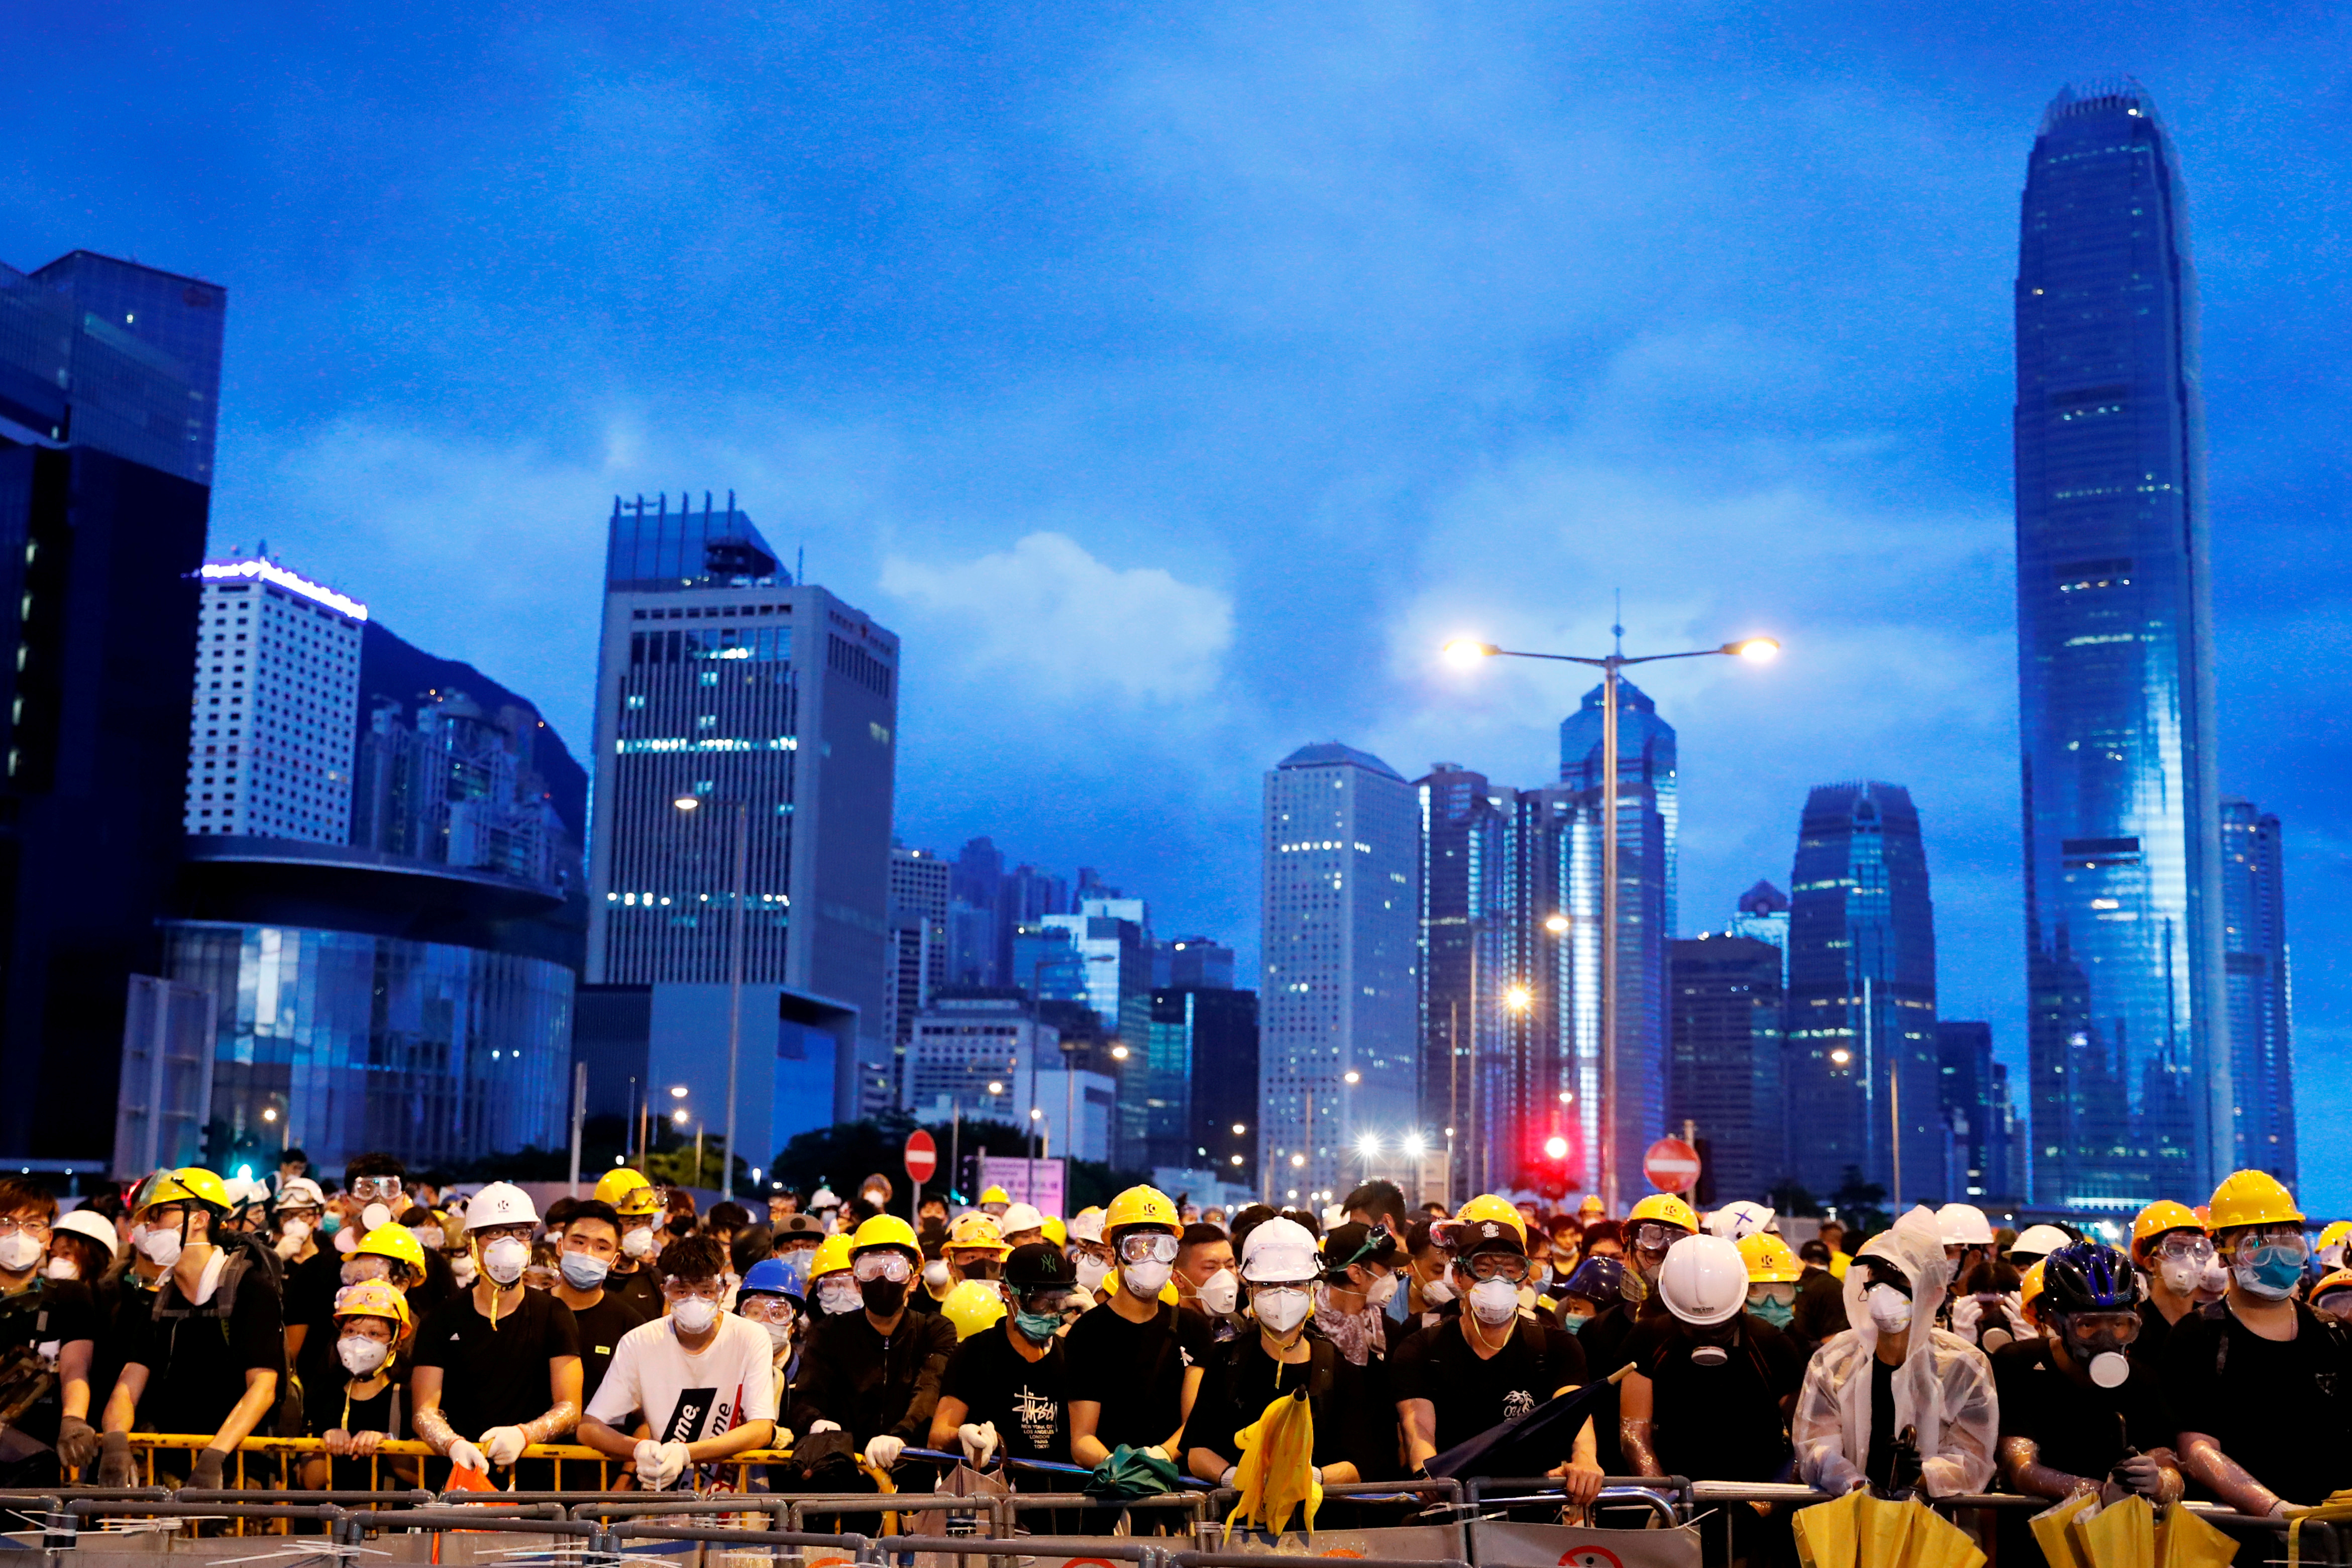 FILE PHOTO: Anti-extradition bill protesters stand behind a barricade during a demonstration near a flag raising ceremony for the anniversary of Hong Kong handover to China in Hong Kong, China July 1, 2019. REUTERS/Tyrone Siu/File Photo